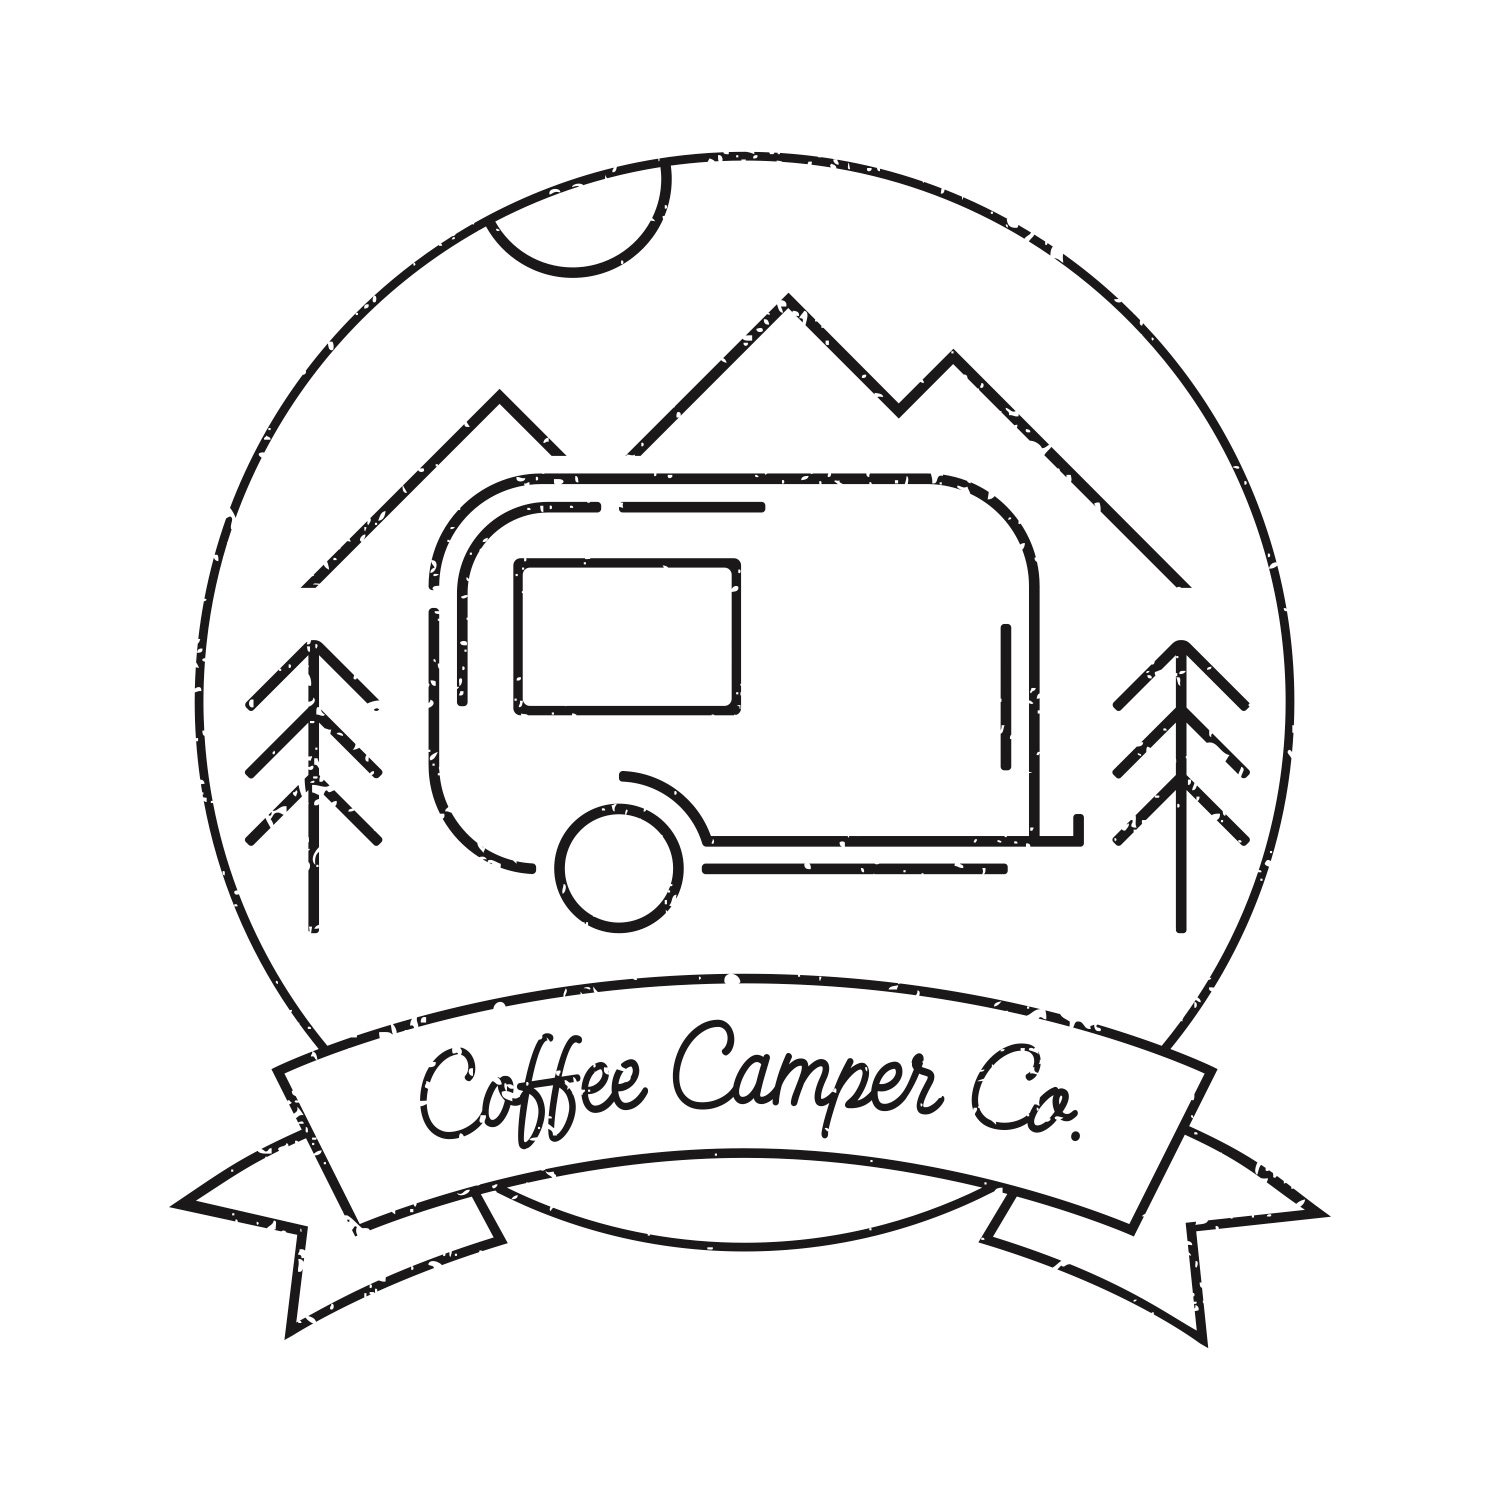 1500x1500 Coffee Camper Co. (@coffeecamperco ) Twitter